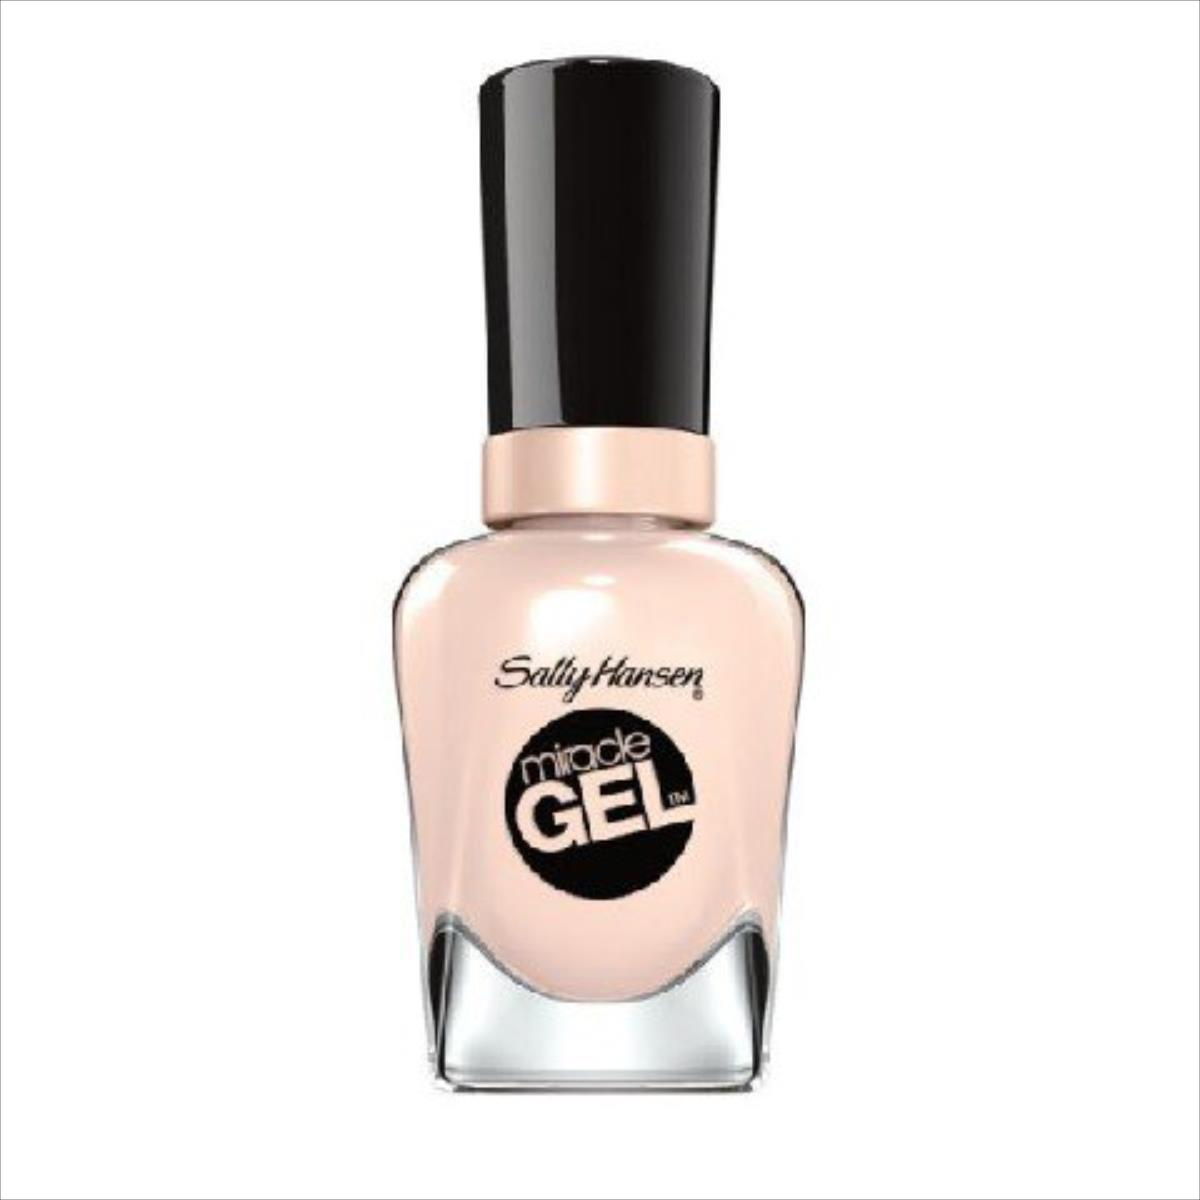 Sally Hansen Miracle Gel nr 110 Birthday Suit  14.7ml